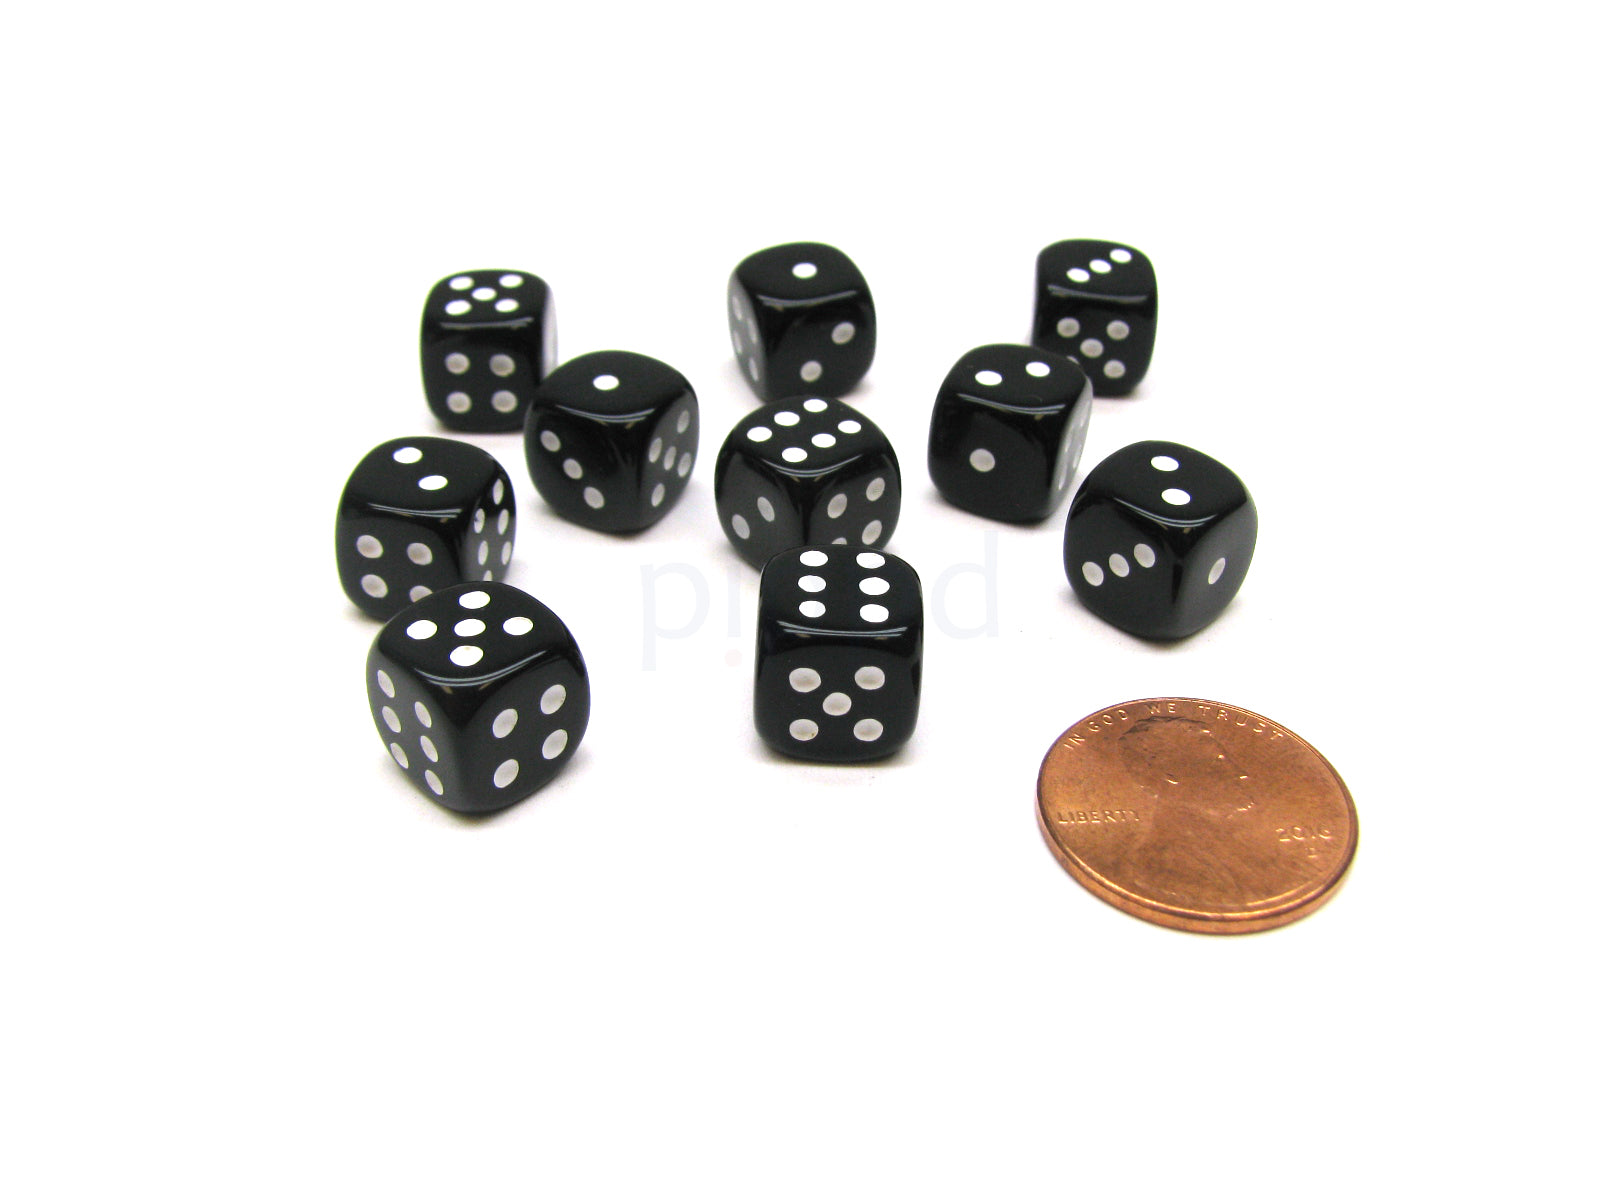 Black with White Pips Pack of 10 Deluxe Round Edge Small 10mm Opaque D6 Dice